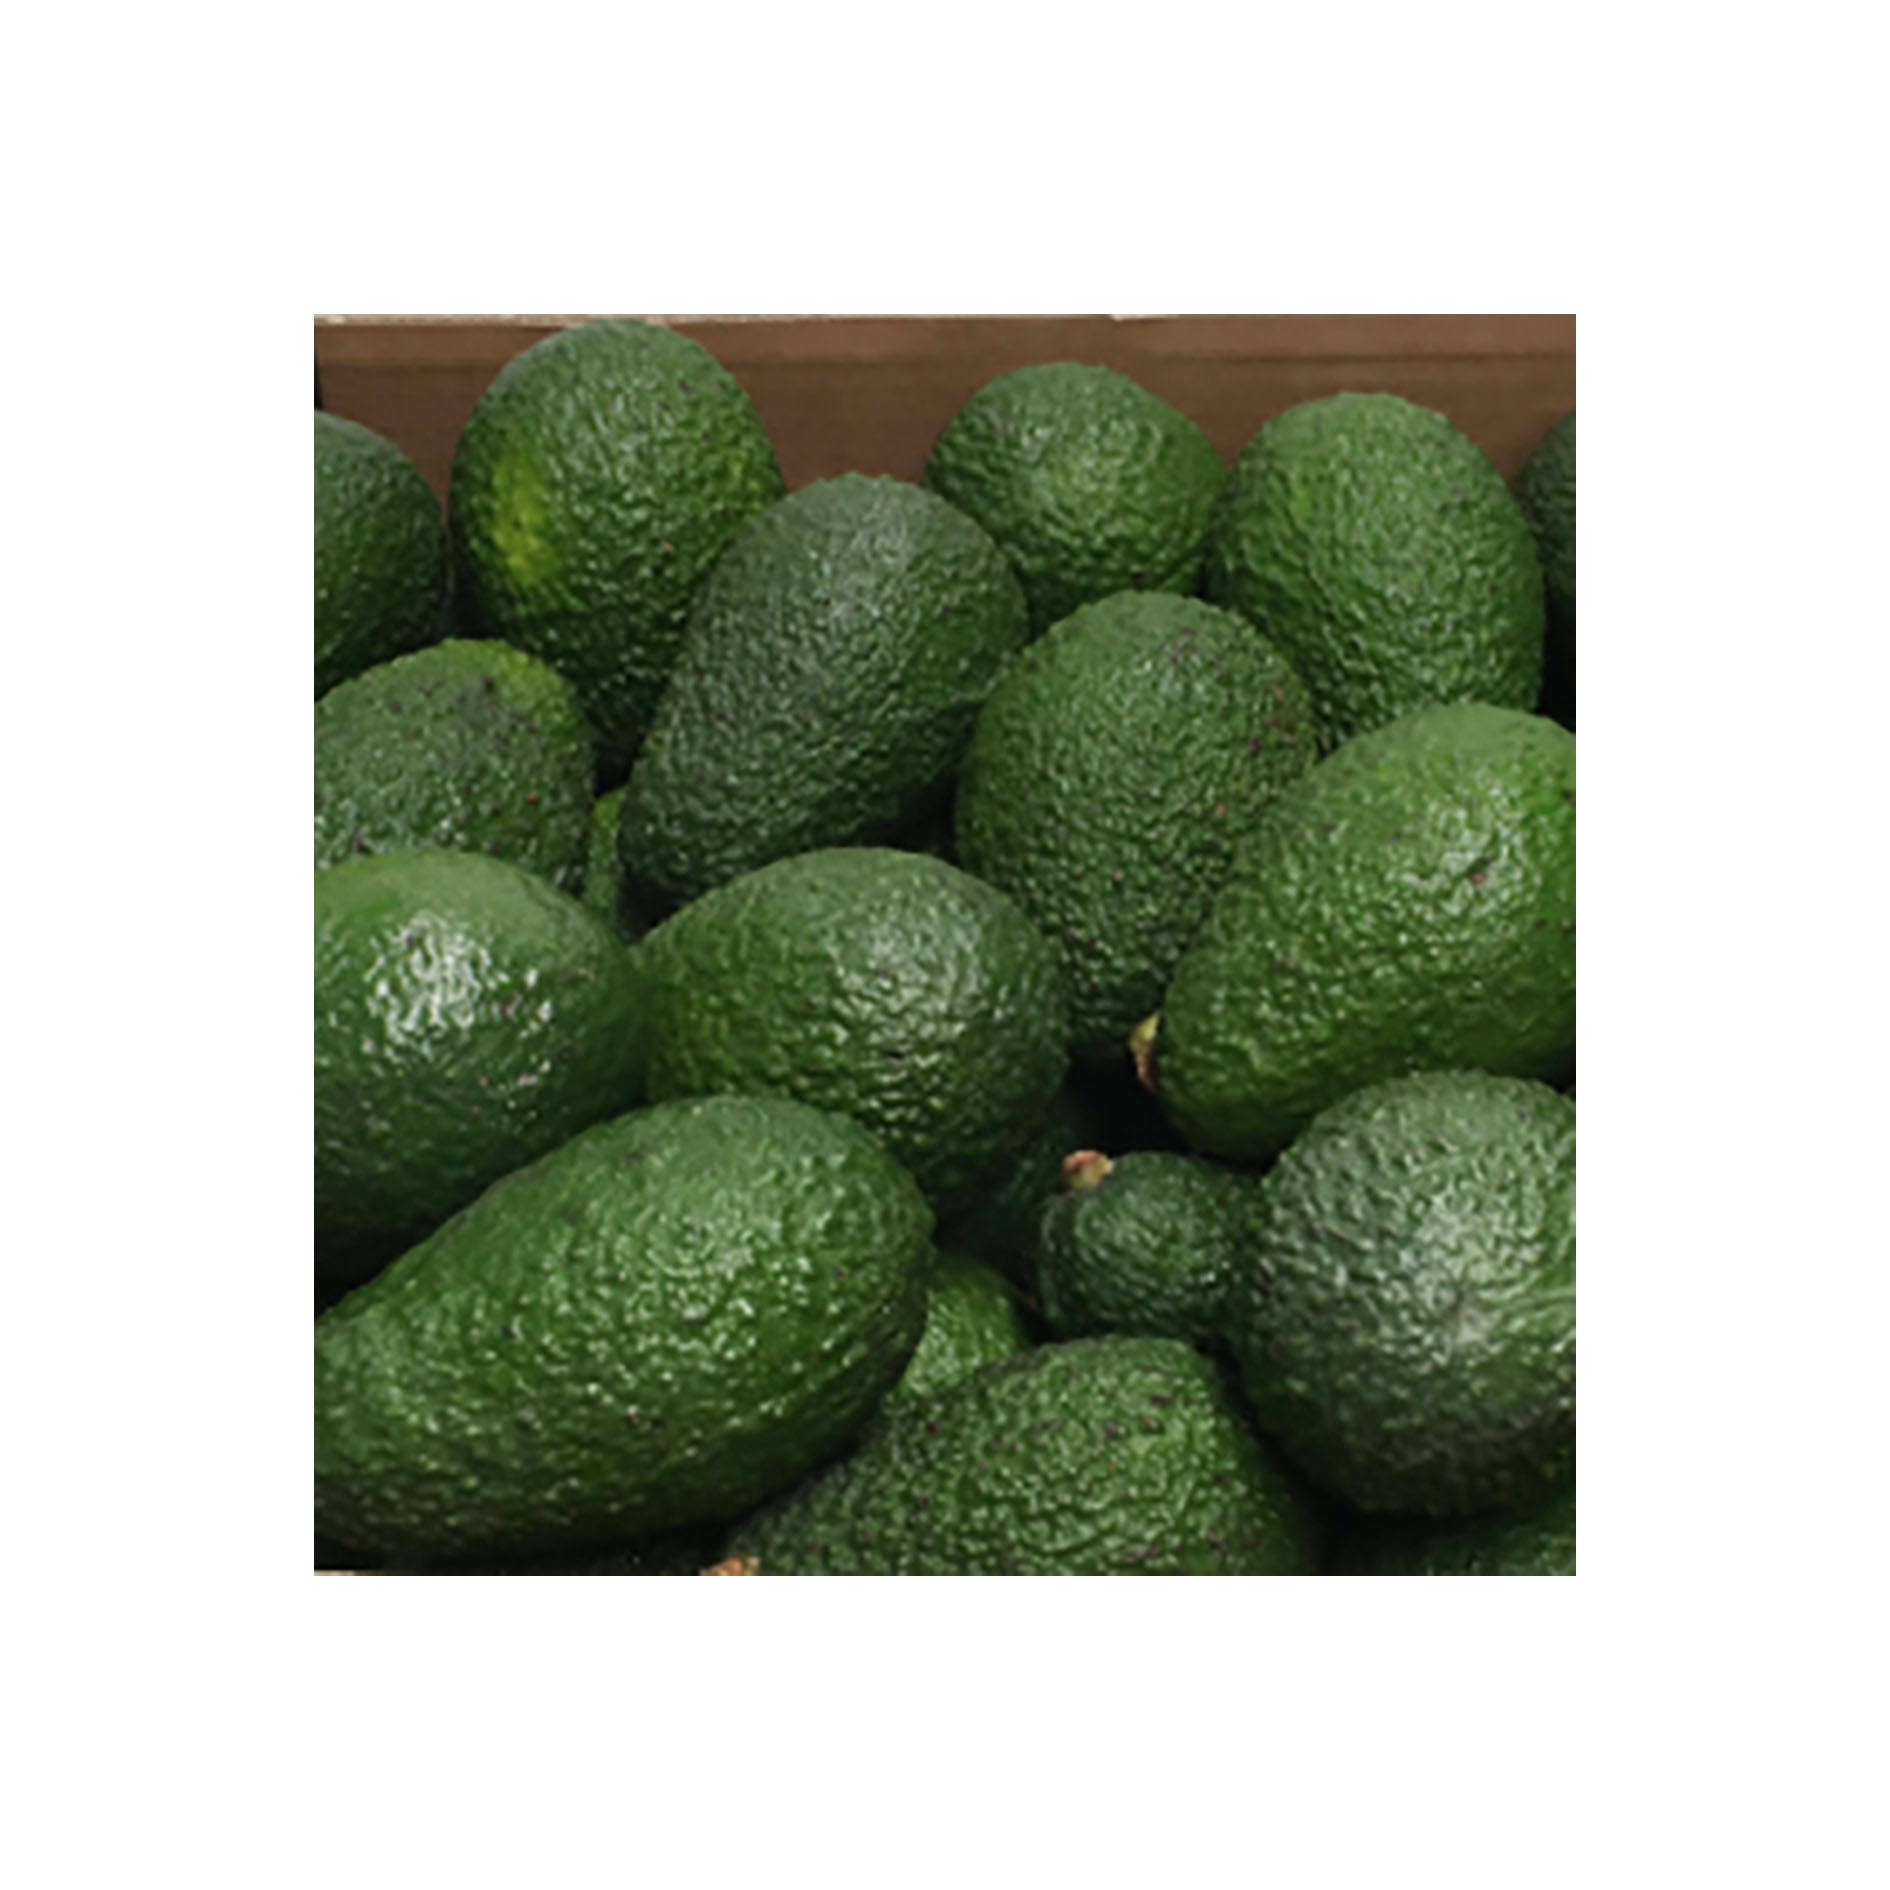 Wholesale import export fresh healthy fruit raw hass avocado products price